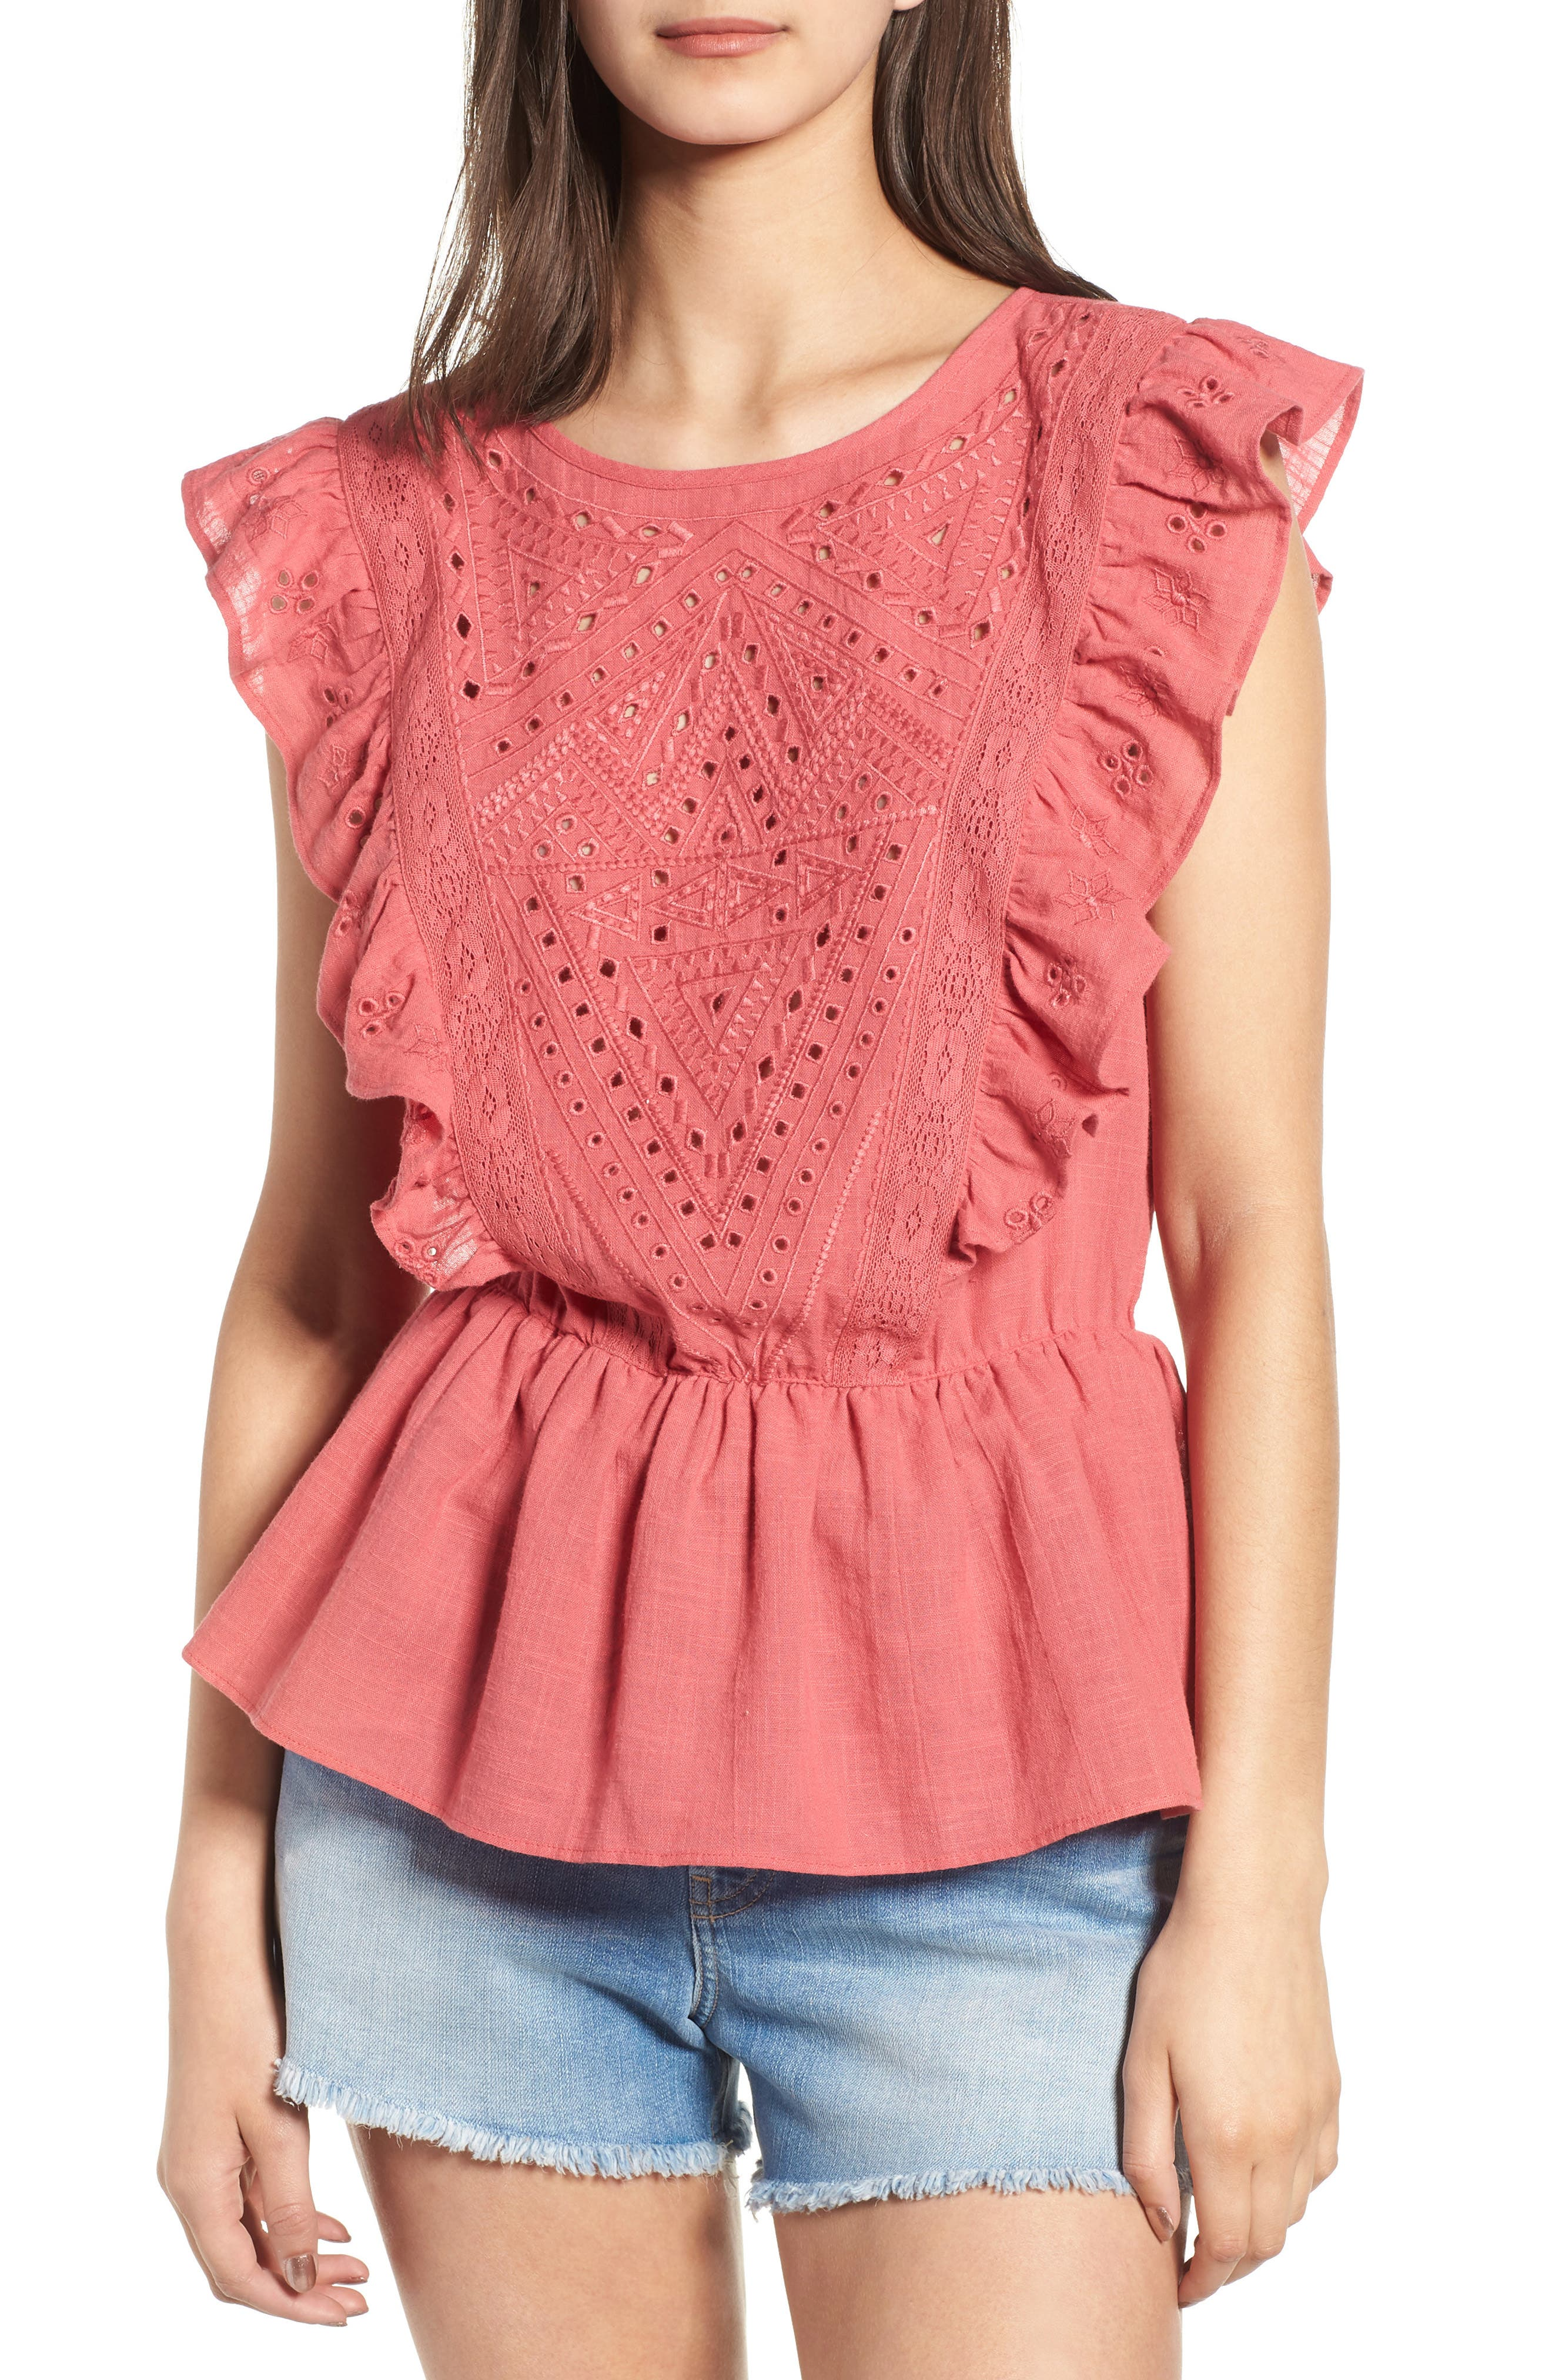 Eyelet Ruffle Top by Hinge